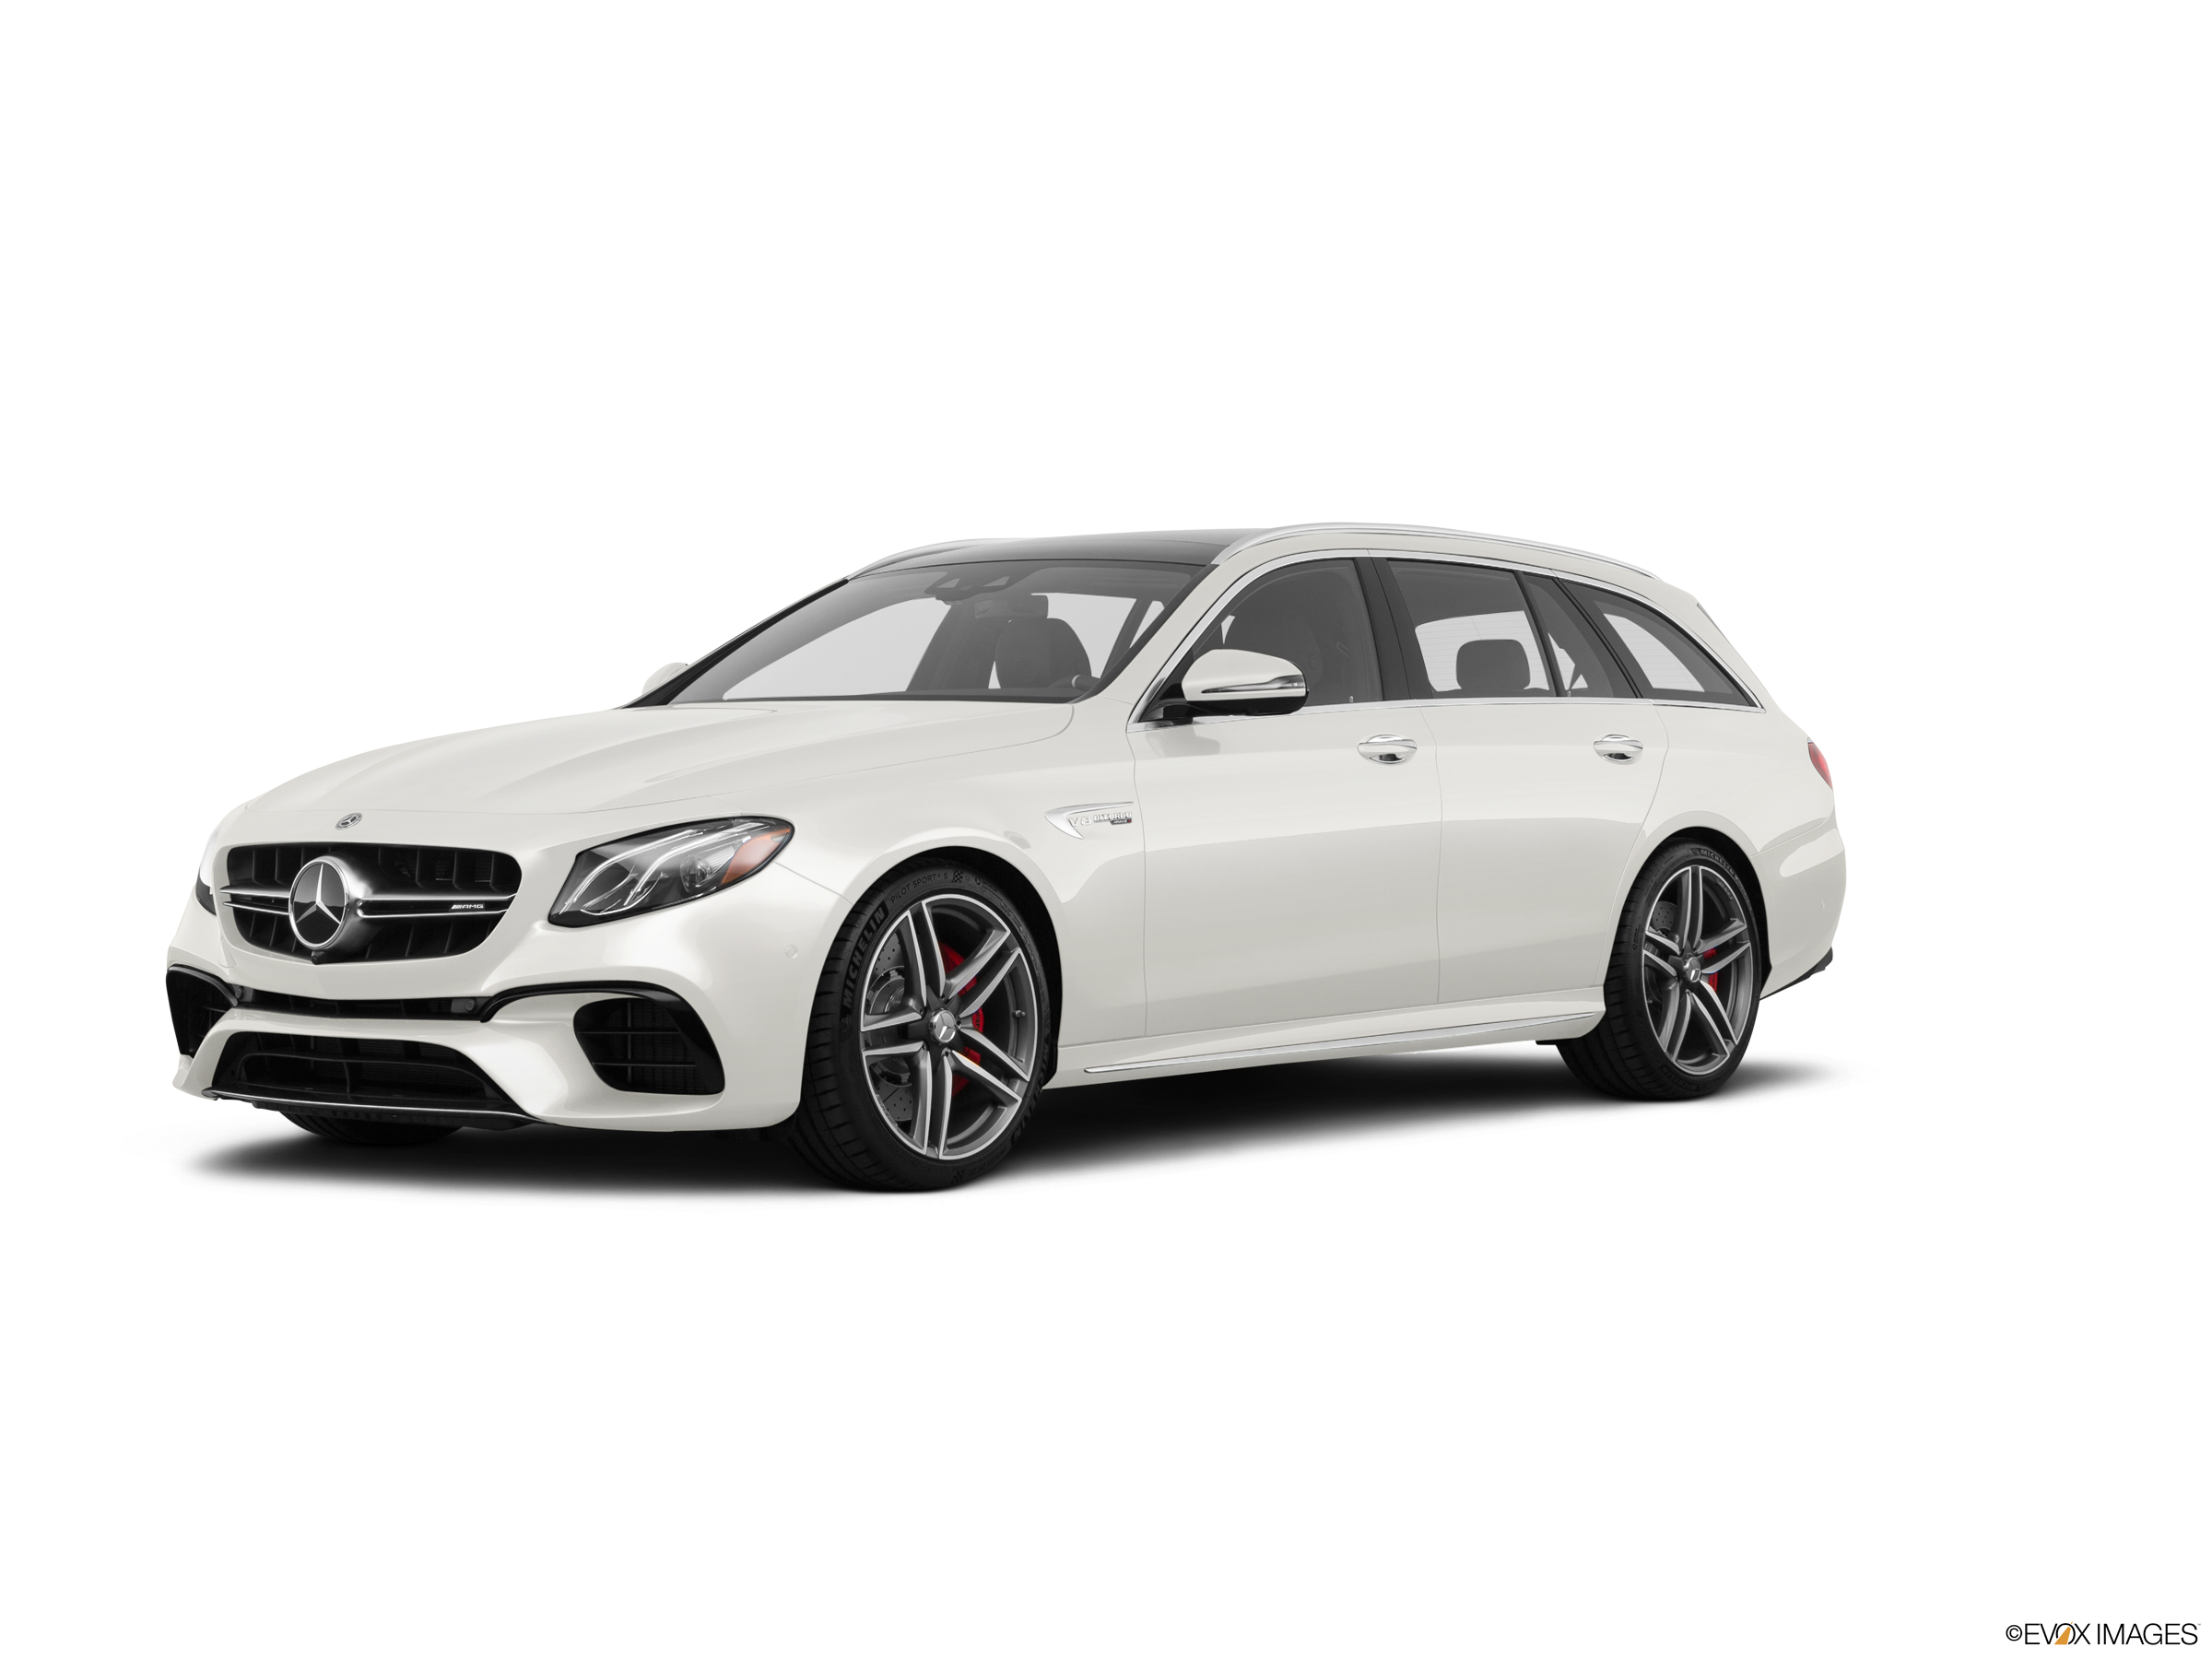 Top Expert Rated Wagons of 2018 - 2018 Mercedes-Benz Mercedes-AMG E-Class